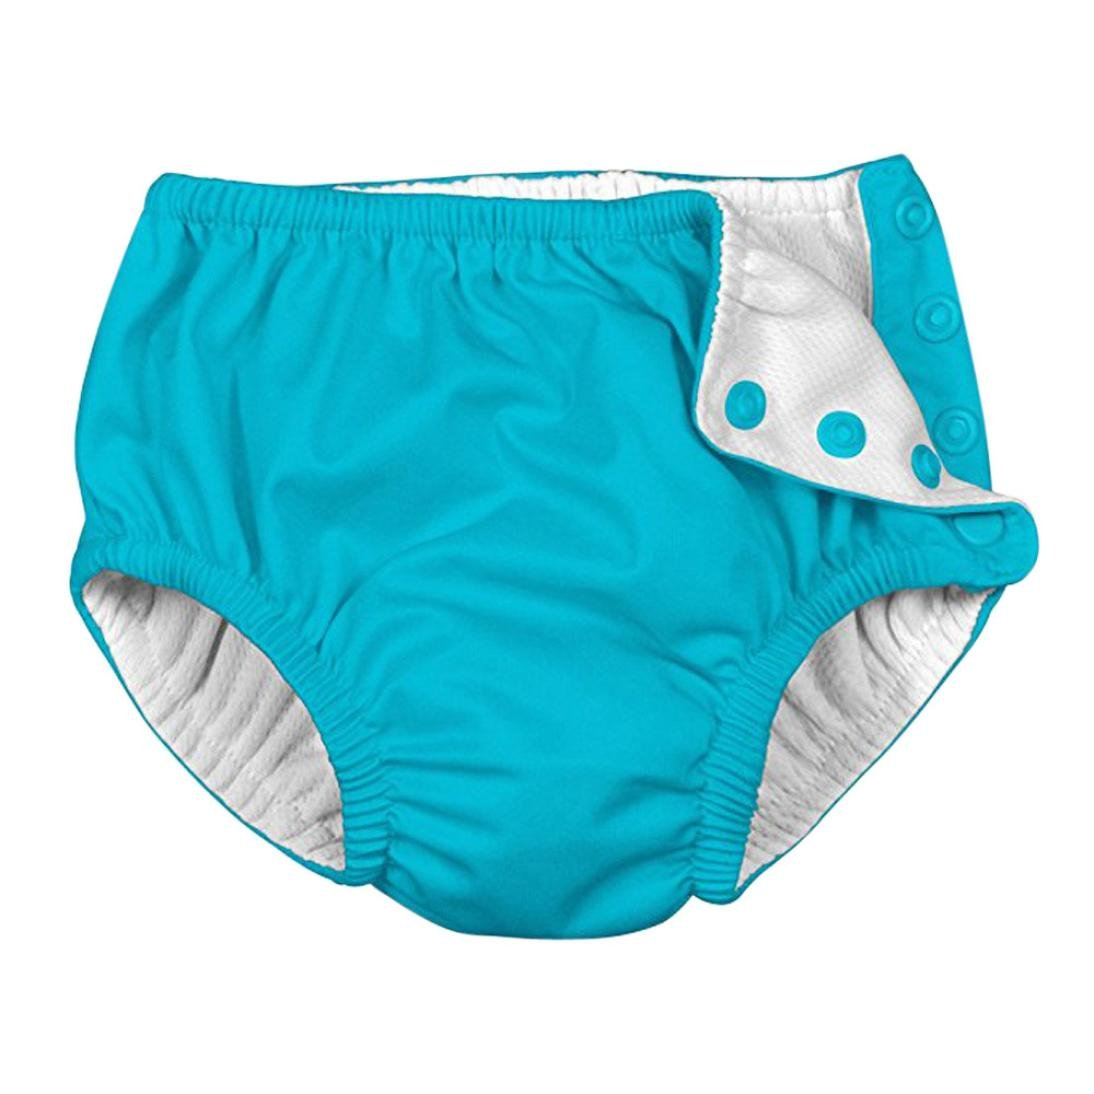 EnjoCho Baby /& Toddler Snap Reusable Absorbent Swimming Nappies Swim Diaper Size:3T, Hot Pink